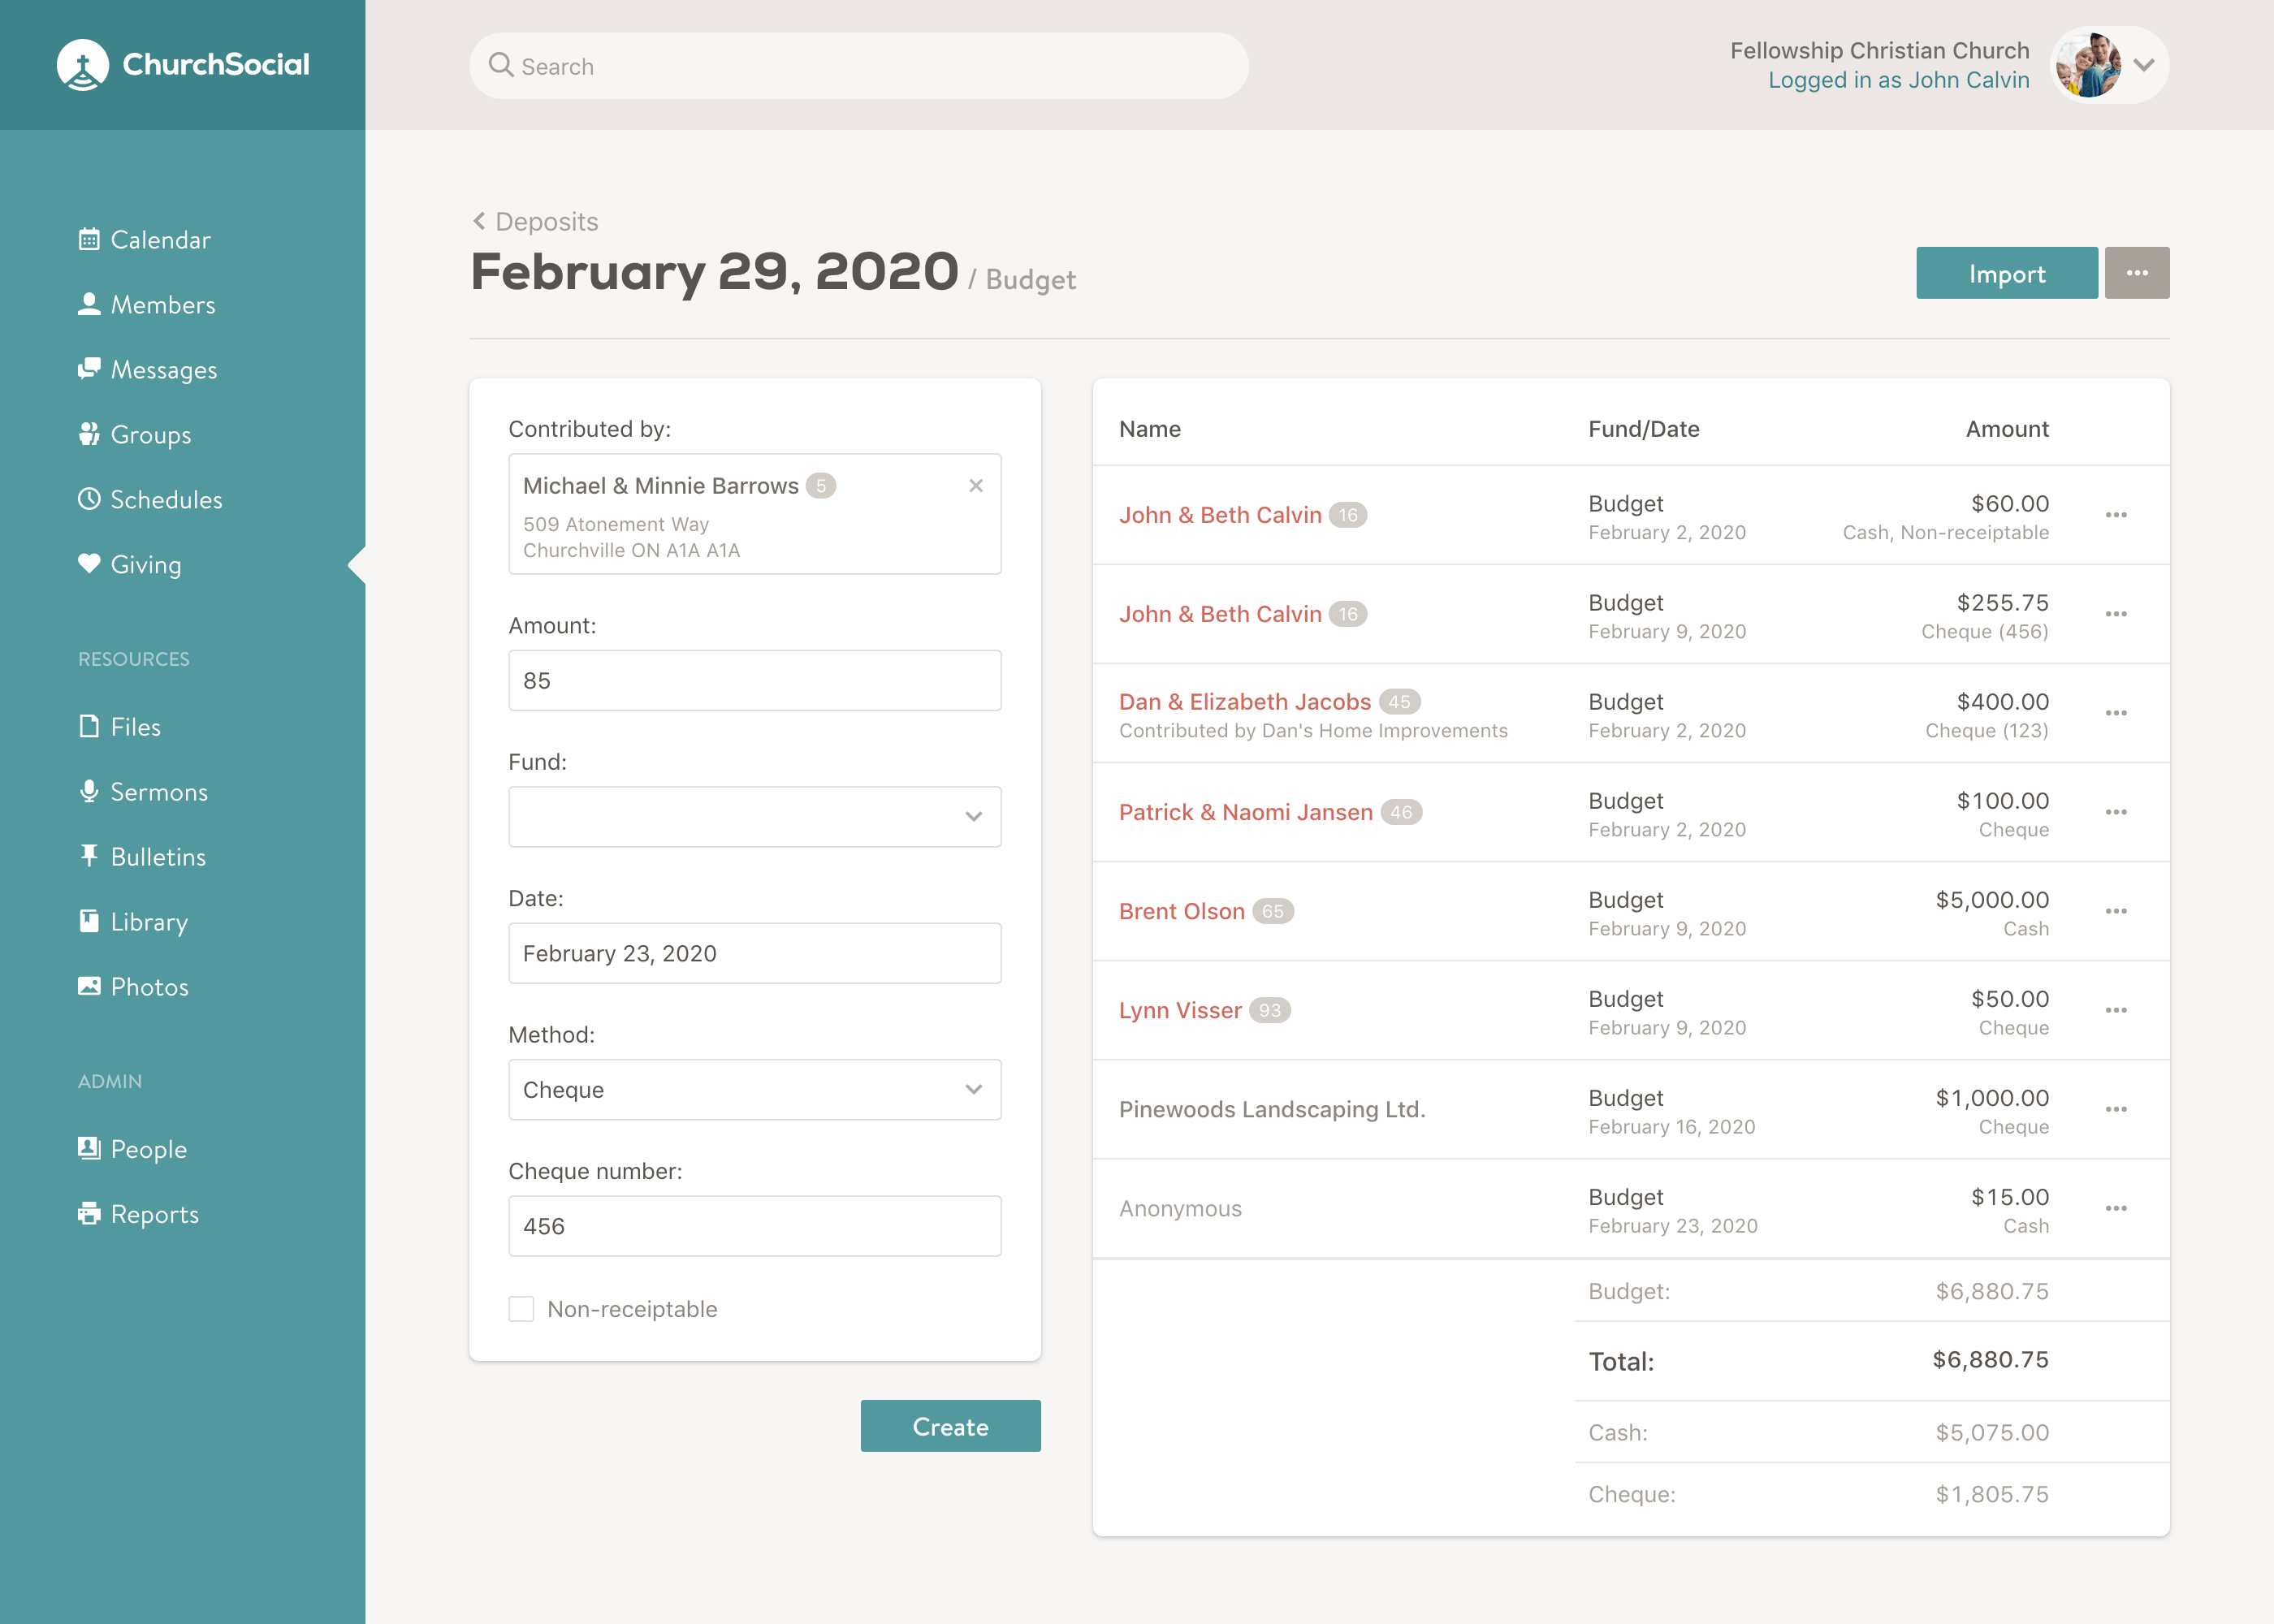 Screenshot of the deposit page